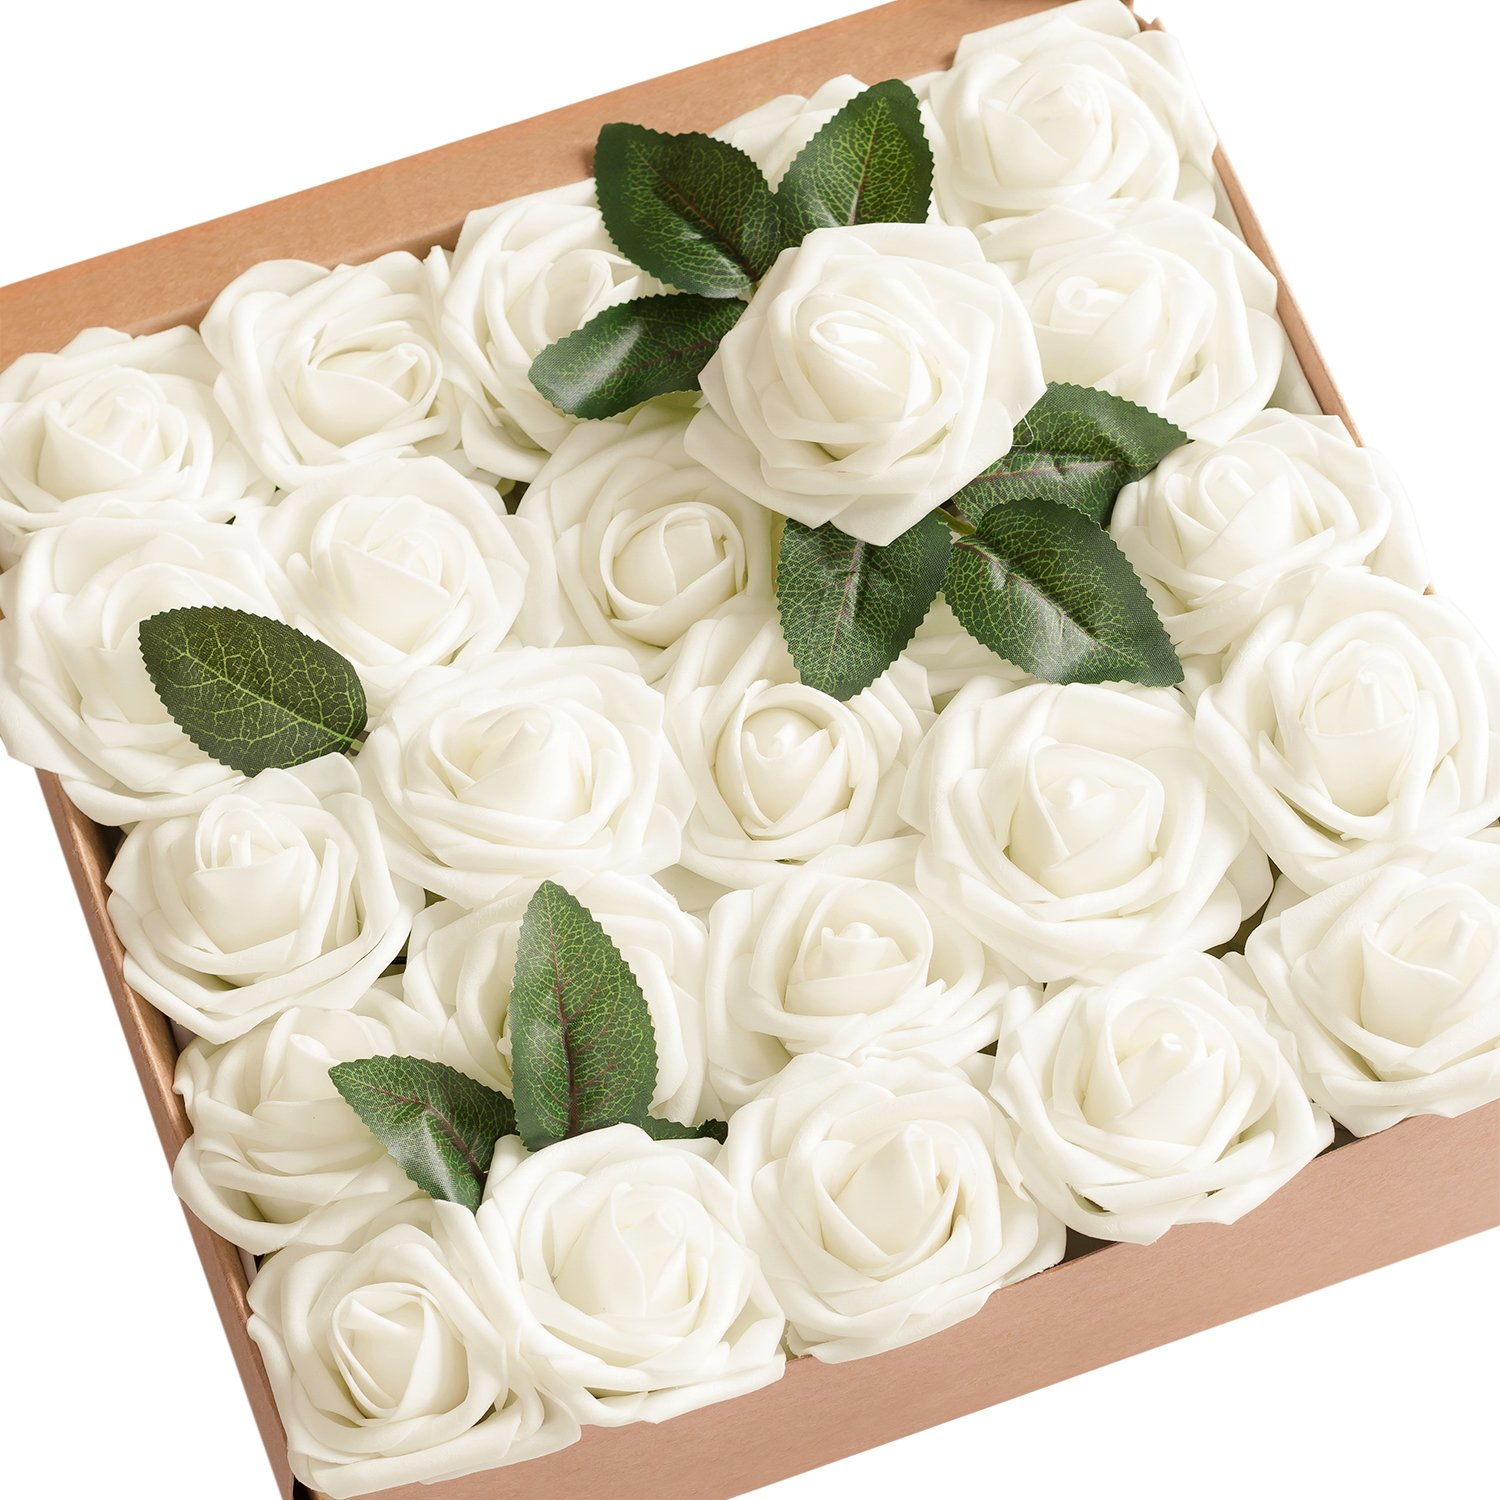 Amazon lings moment artificial flowers ivory roses 50pcs real amazon lings moment artificial flowers ivory roses 50pcs real looking fake roses wstem for diy wedding bouquets centerpieces arrangements party baby izmirmasajfo Images